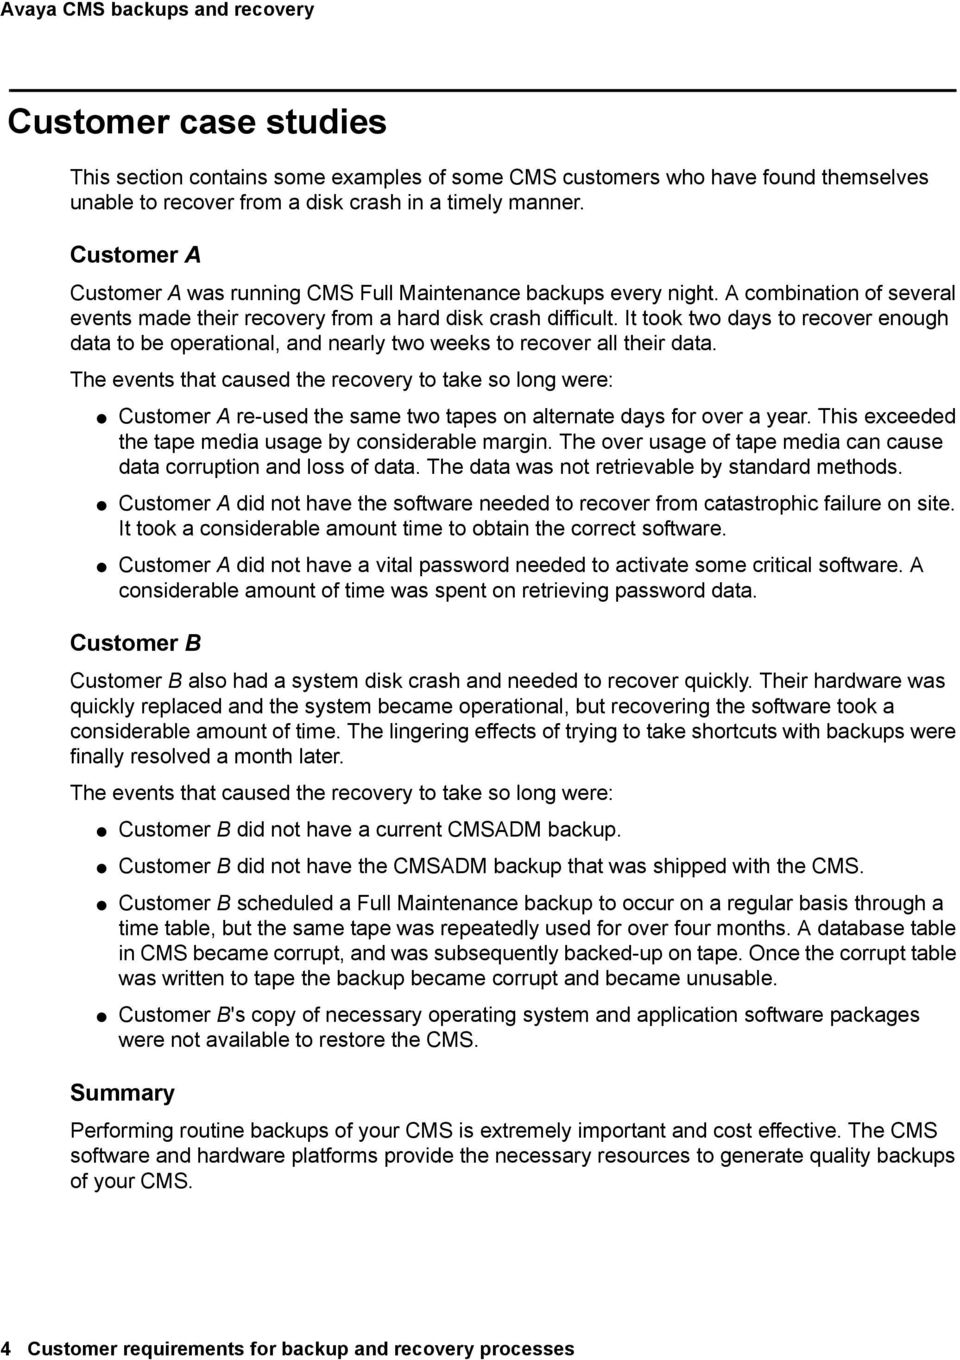 Avaya Call Management System Customer requirements for